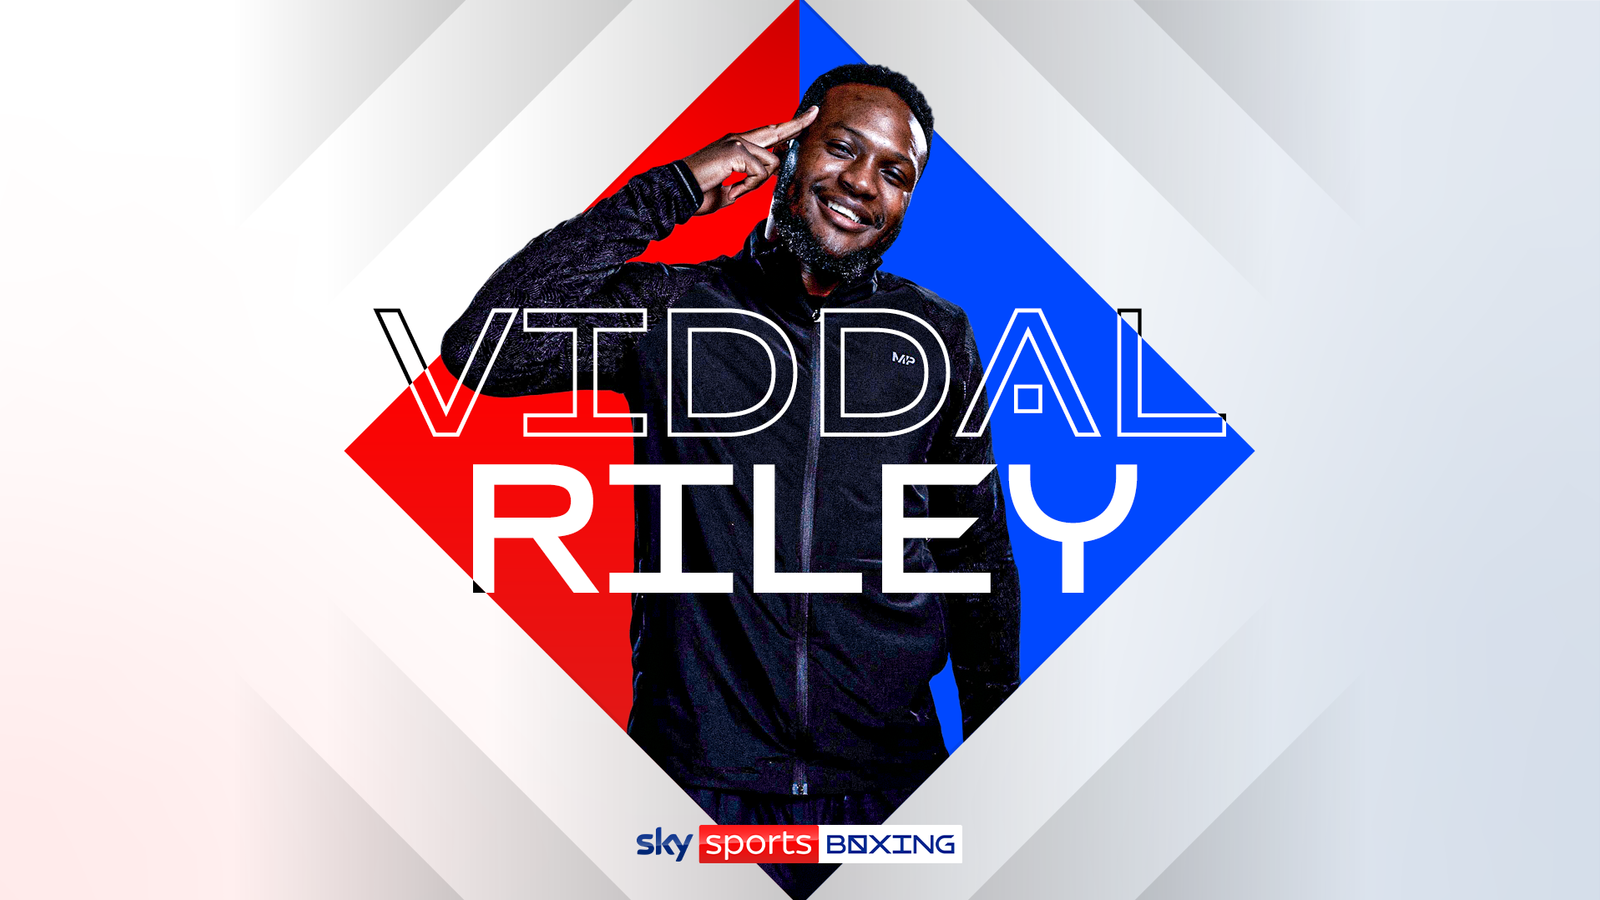 Viddal Riley hosts a watchalong of Sky Sports Boxing and BOXXER's Newcastle show